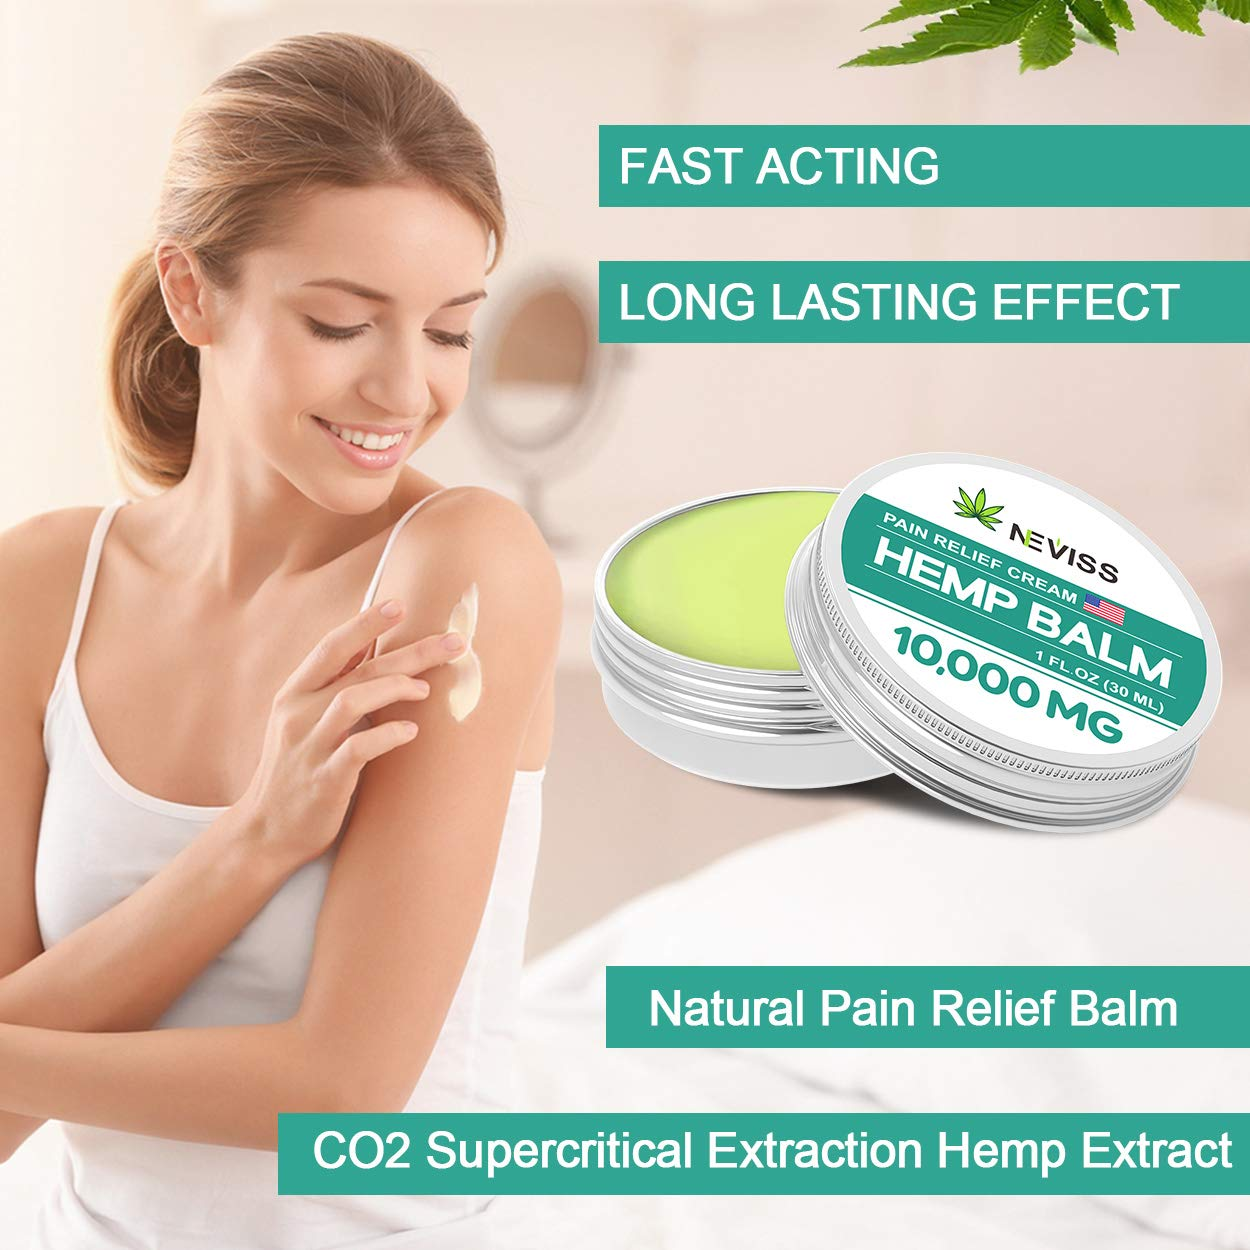 Organic Hemp Balm for Pain Relief 20000 MG (2 Pack), Natural Hemp Pain Relief Cream for Back, Knee, Neck, Nerve & Joint Pain - Premium Hemp Herbal Extract Balm for Inflammation & Sore Muscles